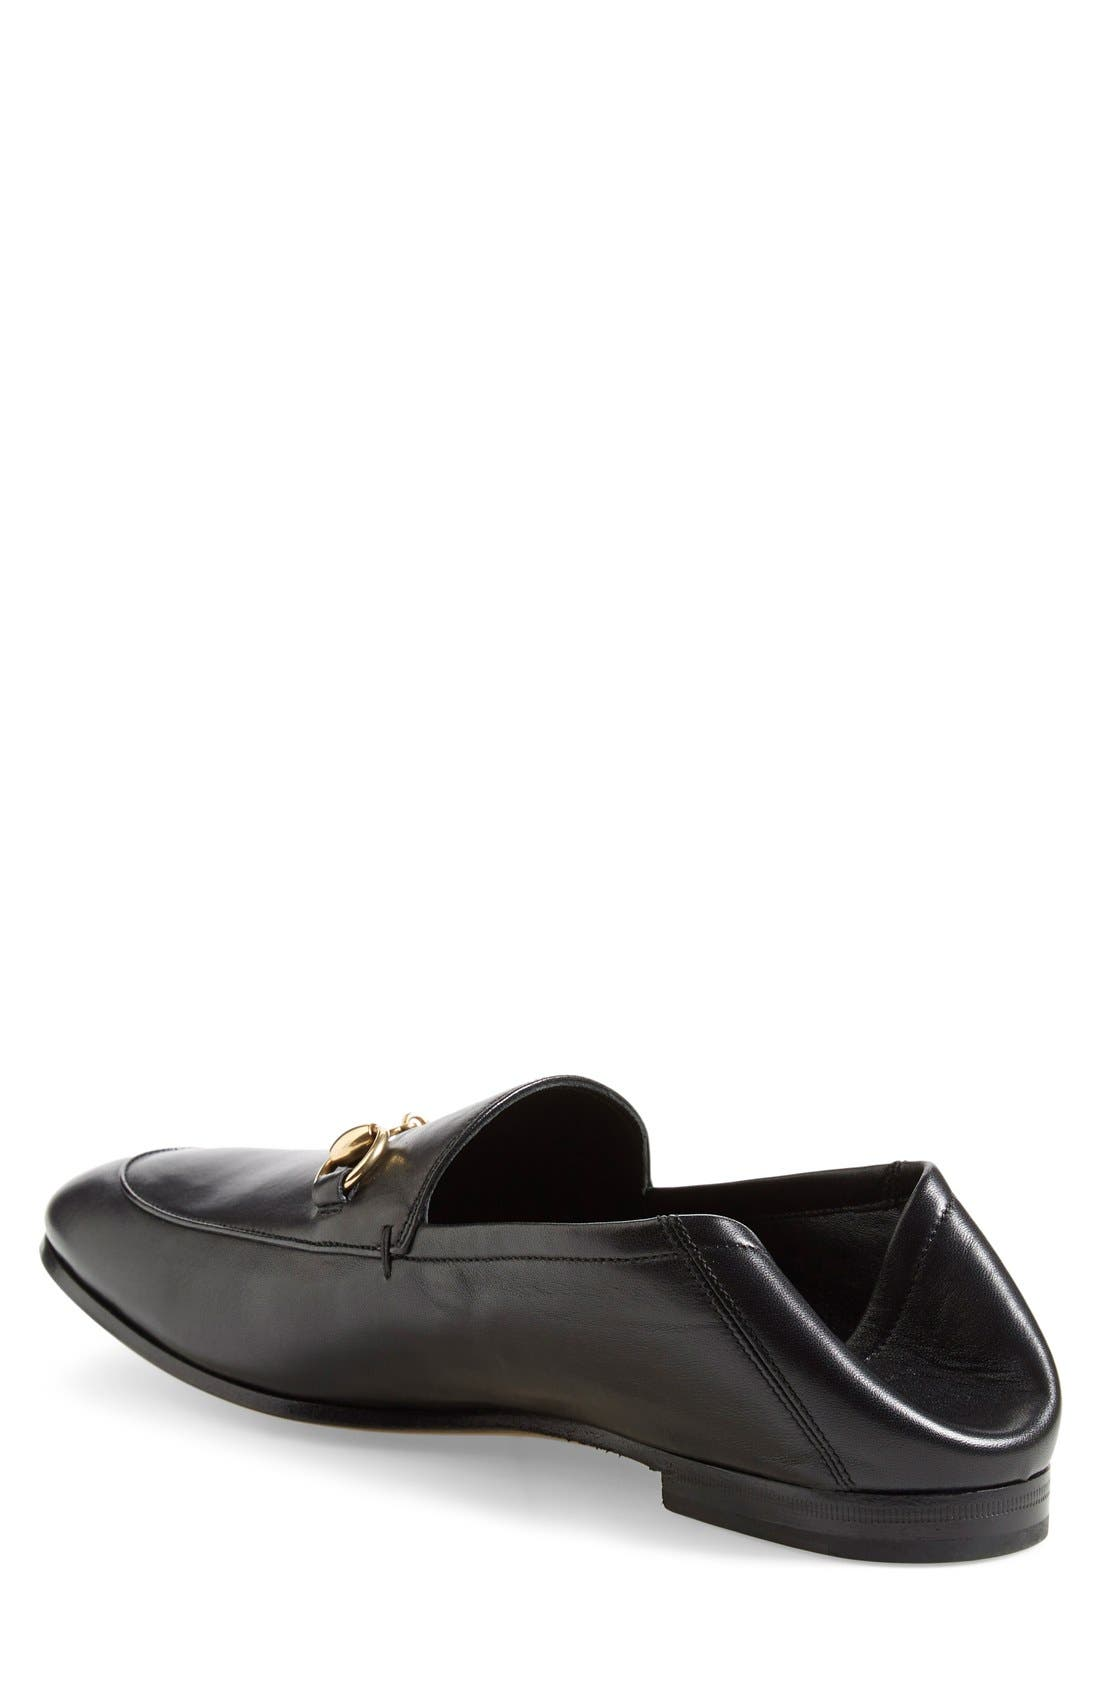 Alternate Image 2  - Gucci Brixton Convertible Bit Loafer (Men)